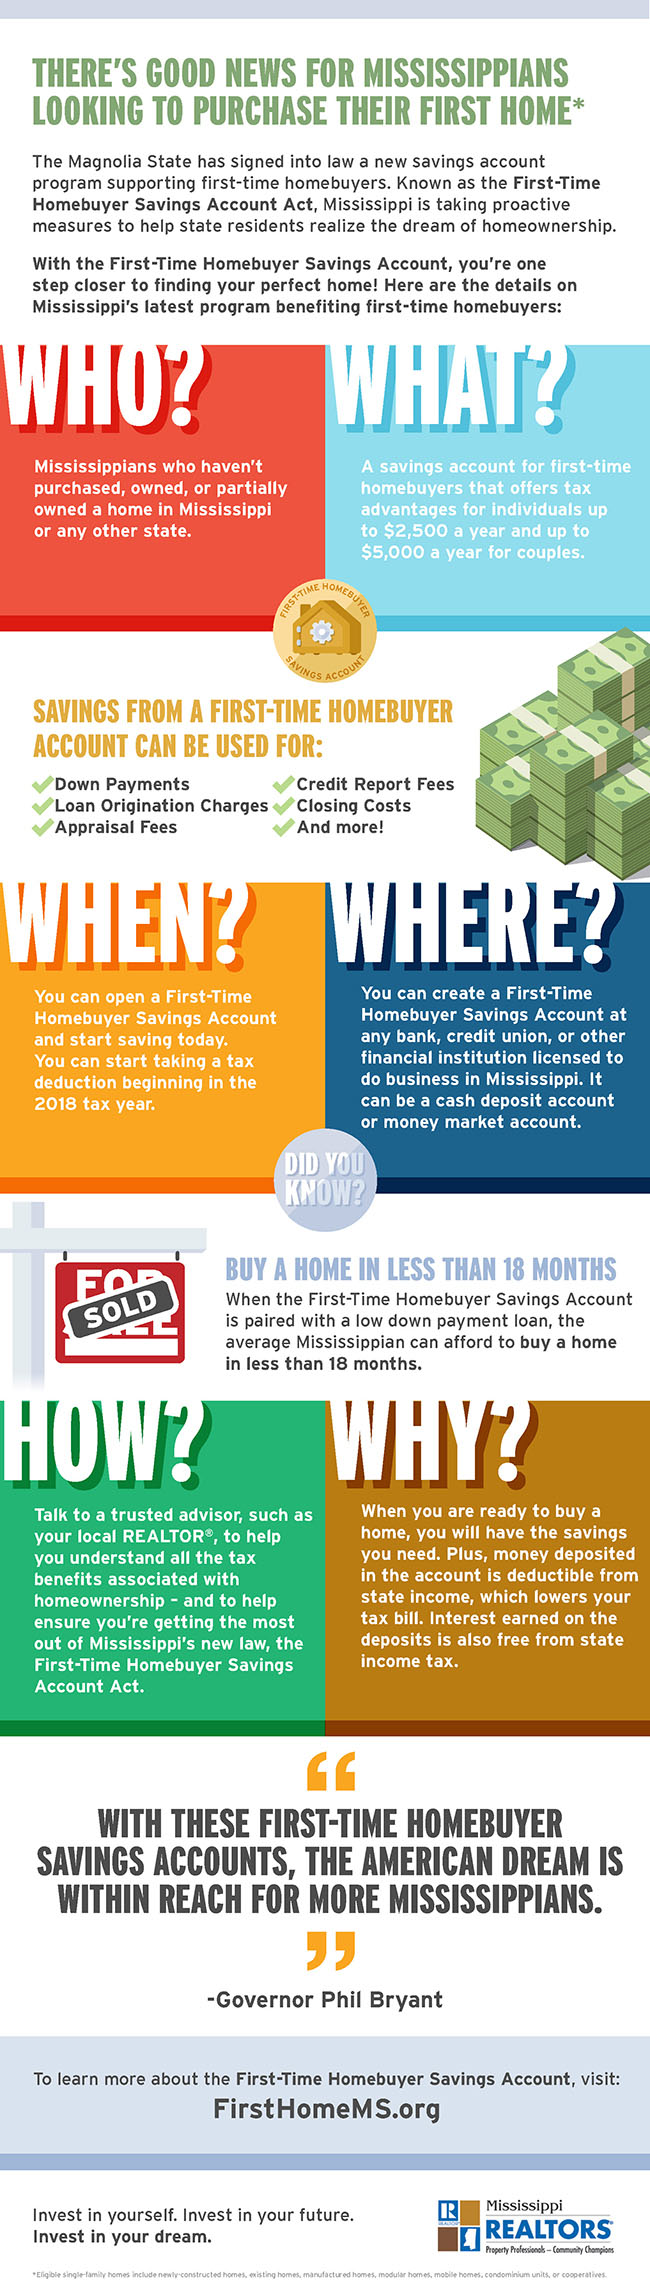 This is an Infographic - Text version displayed below.